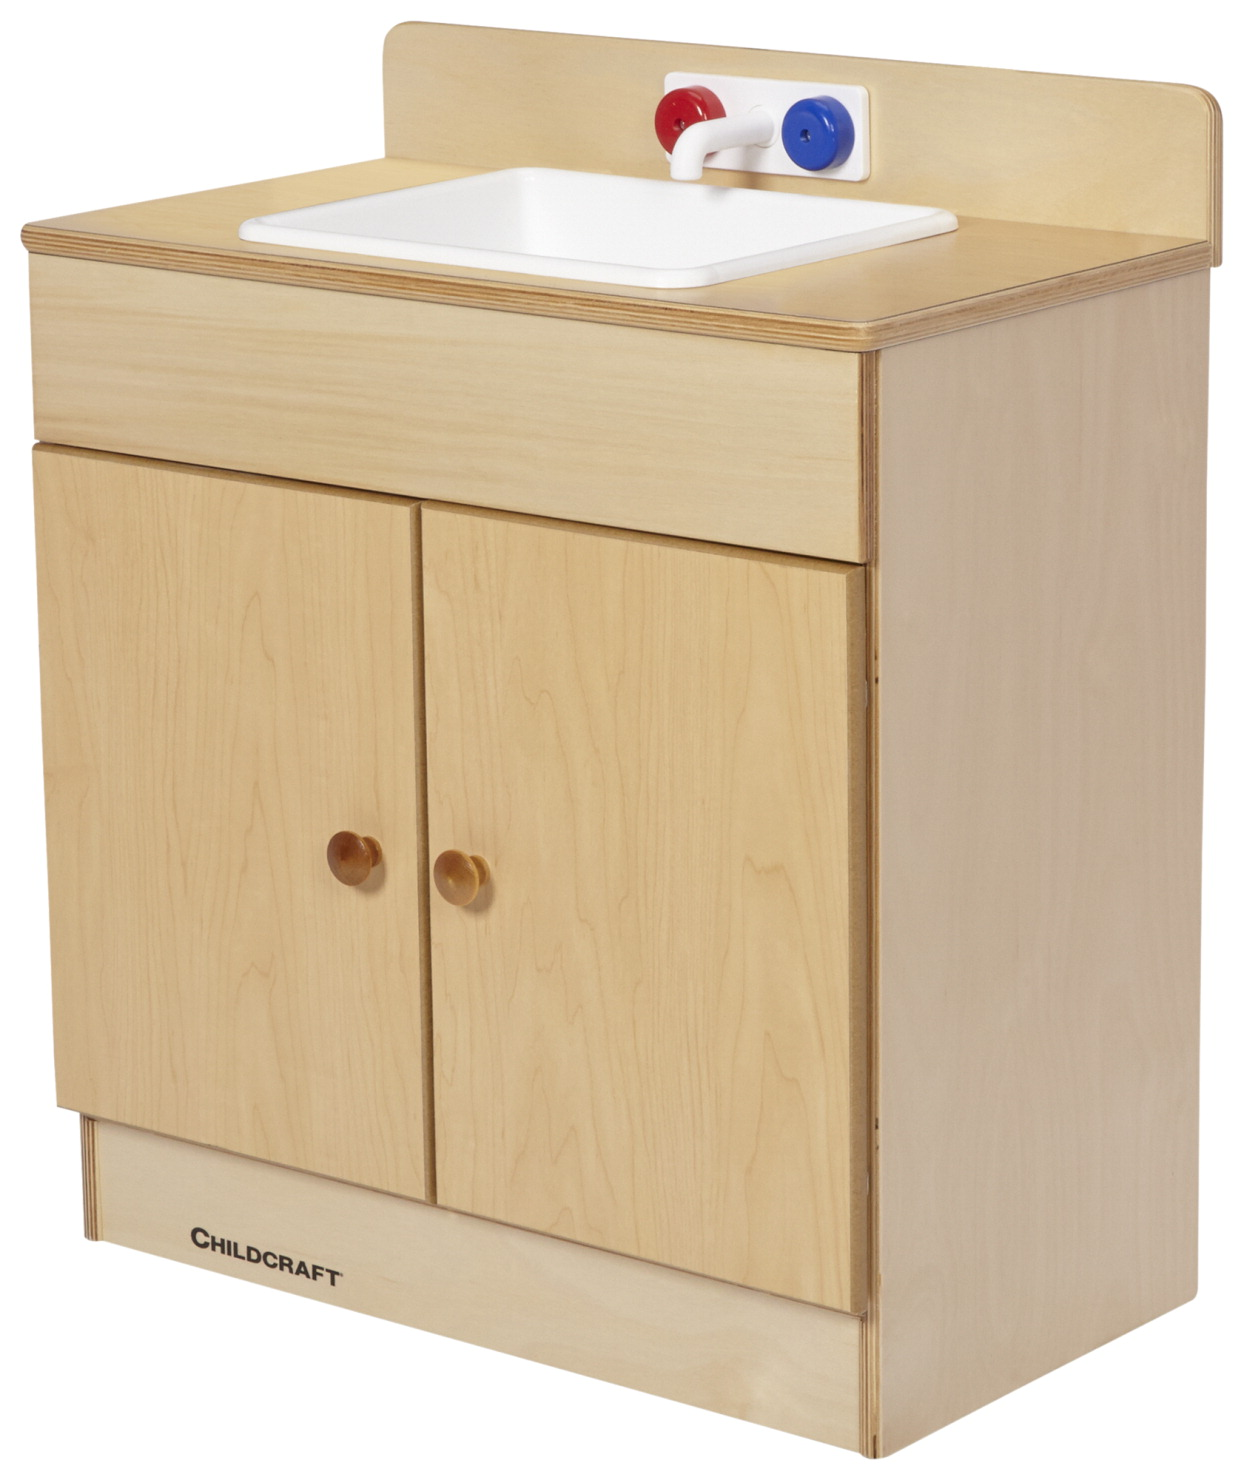 Childcraft Play Sink, 24 x 13-3/8 x 27-3/4 Inches